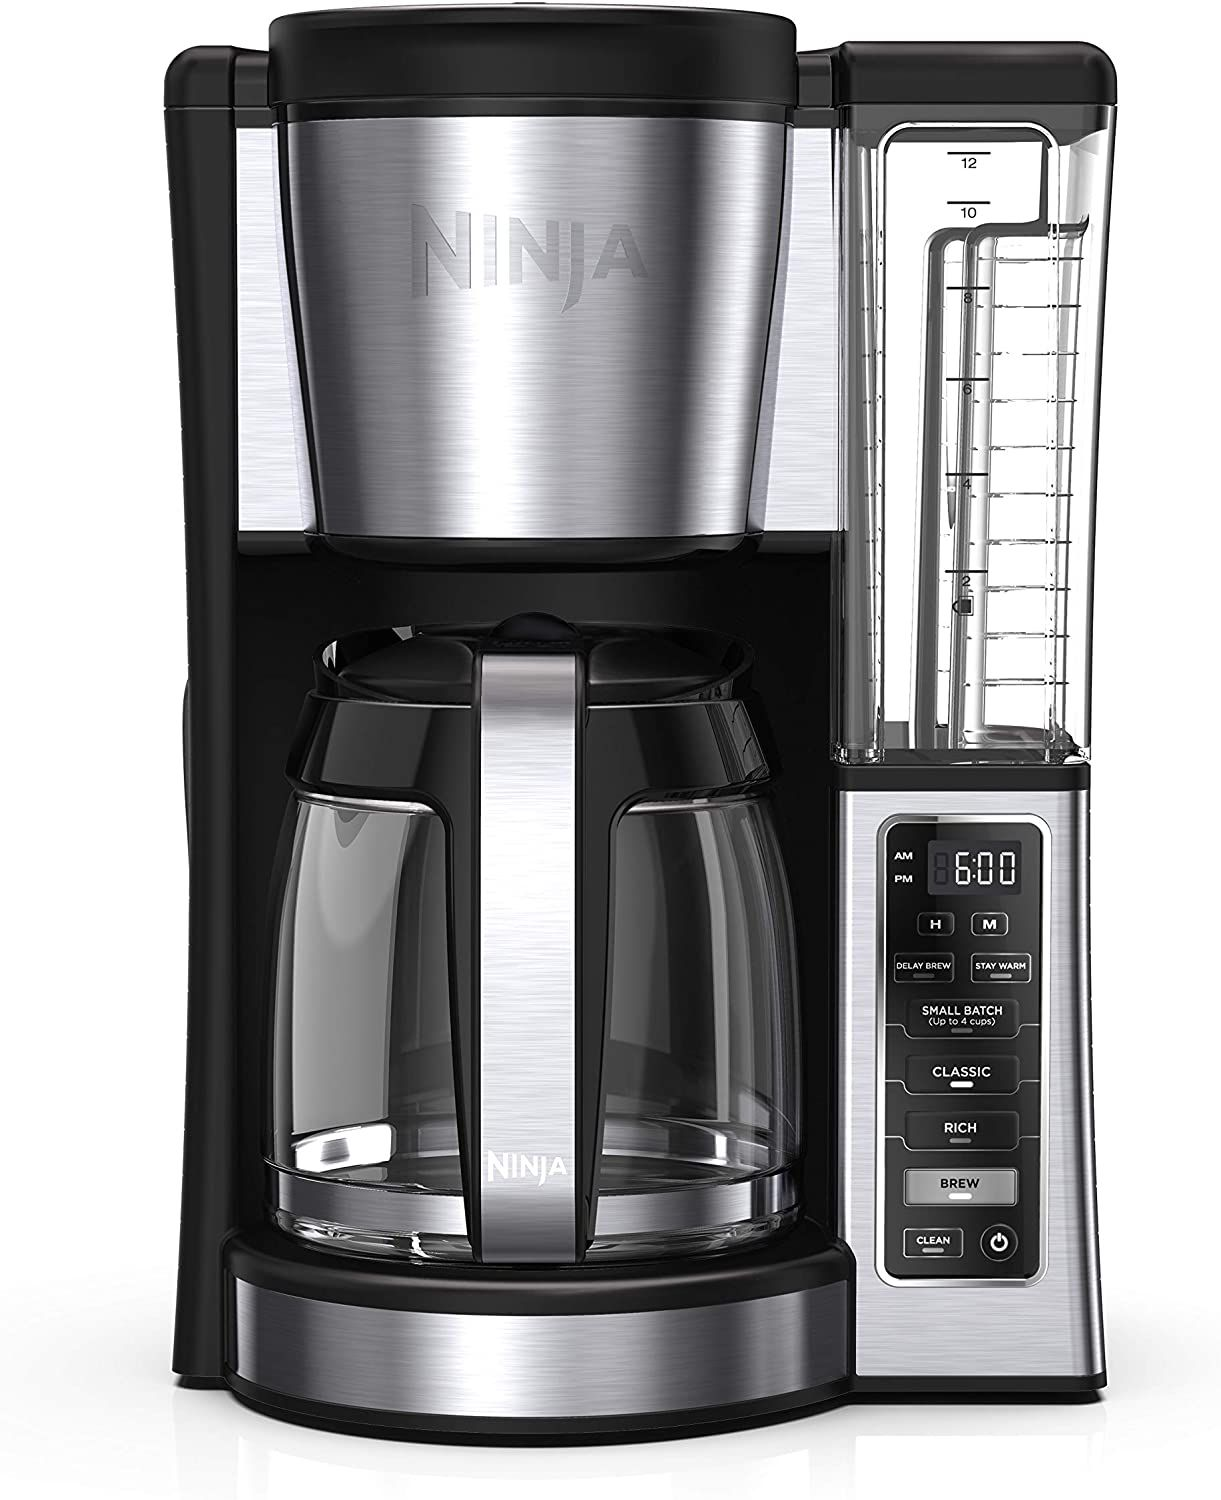 Ninja Programmable Coffee Brewer in 2020 Coffee maker